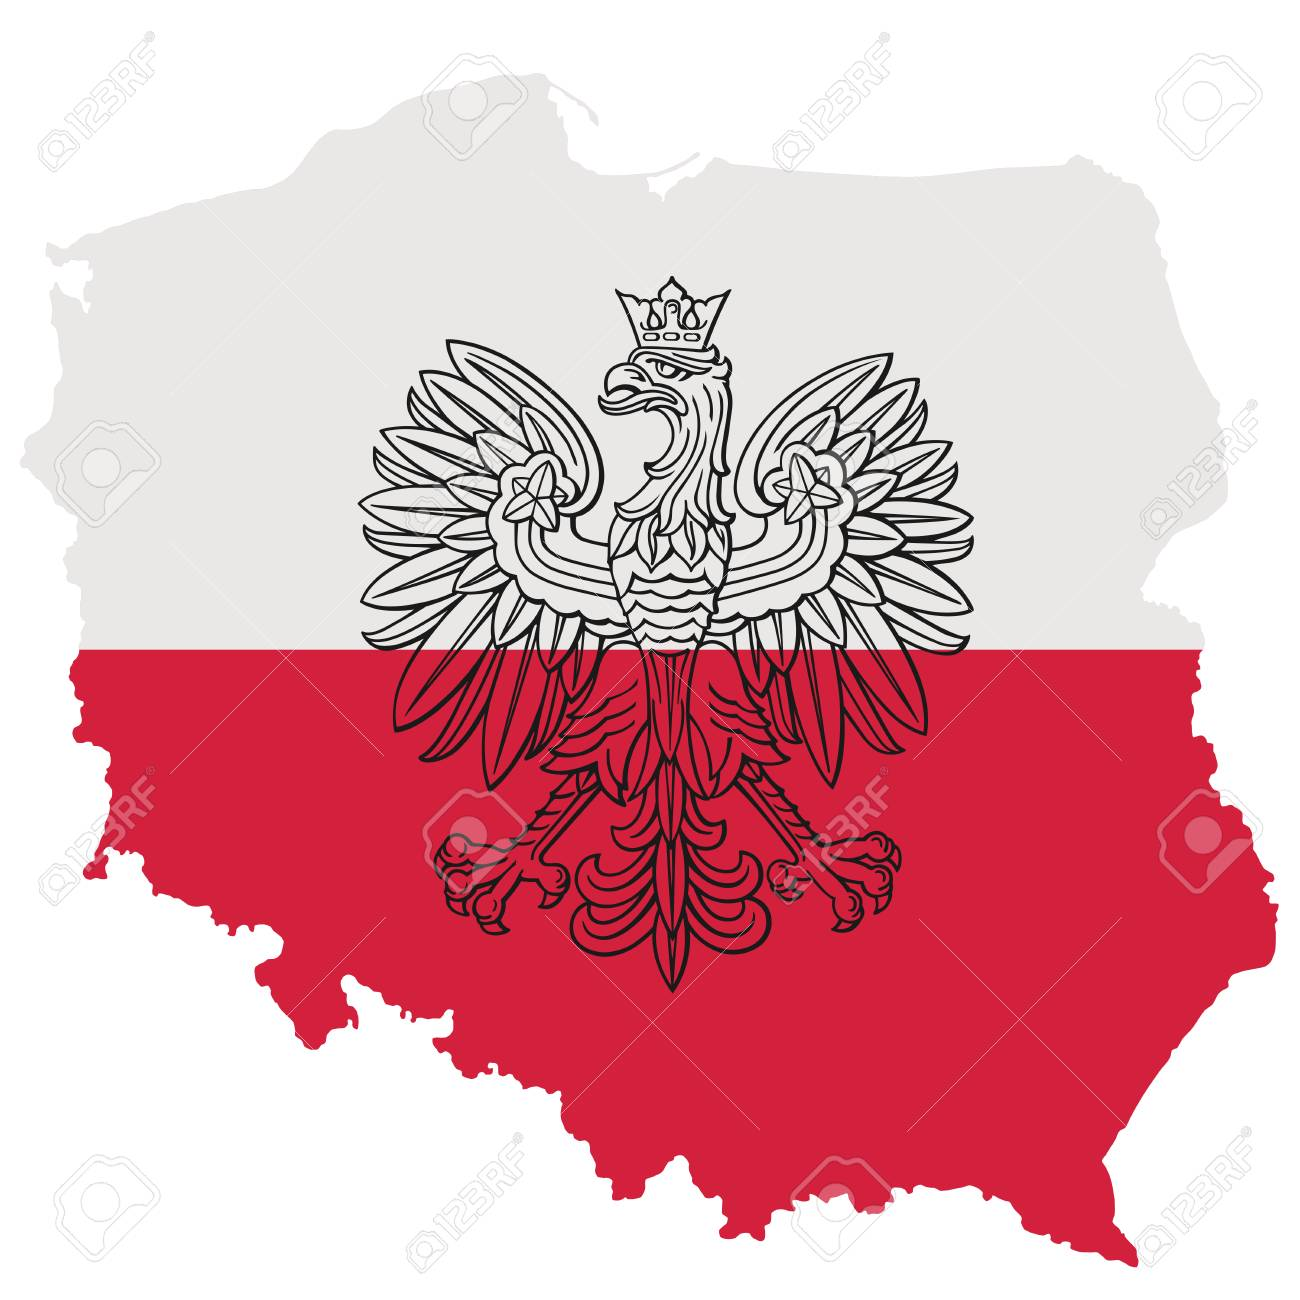 Poland Flag Map Poland Map With Eagle And White Red Polish Flag, Vector National